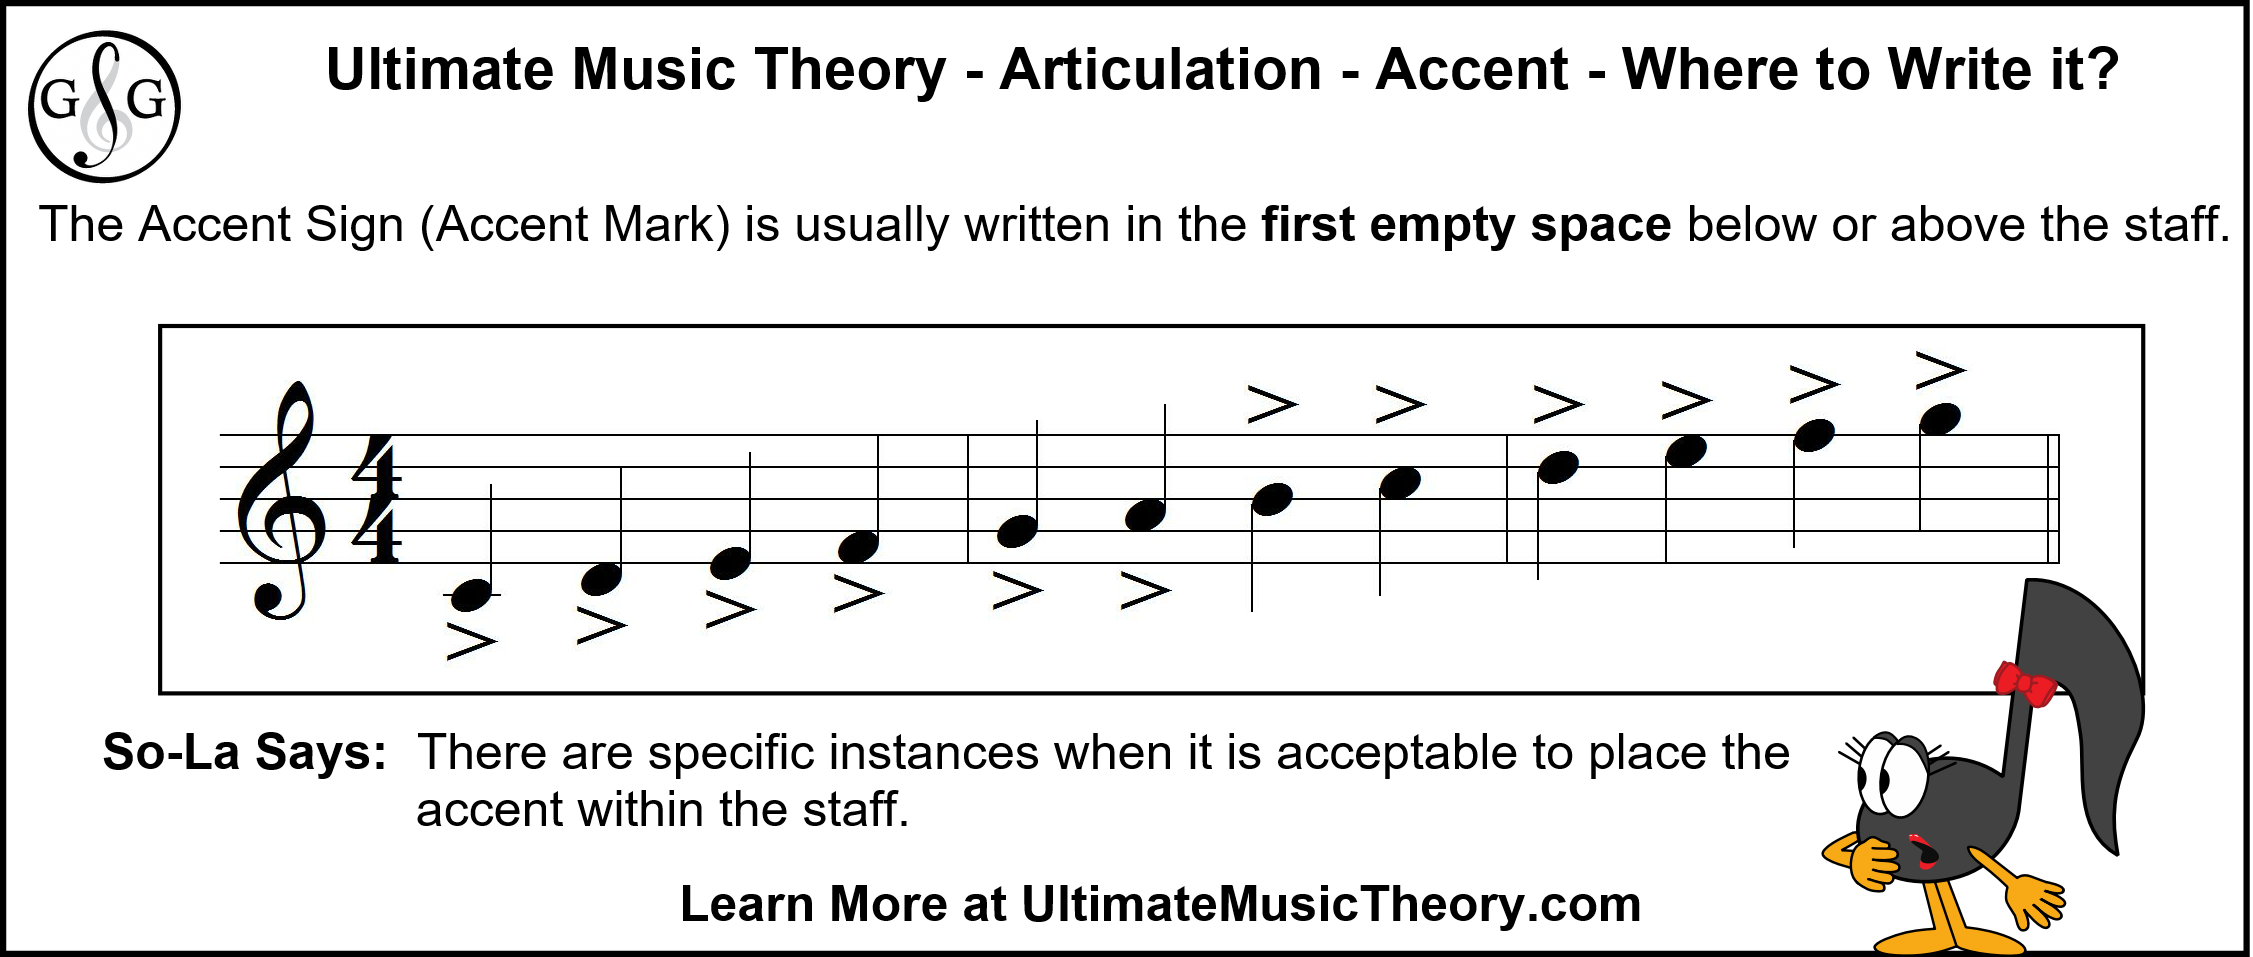 UMT - Articulation - Accent - Acceptable Places to Write it